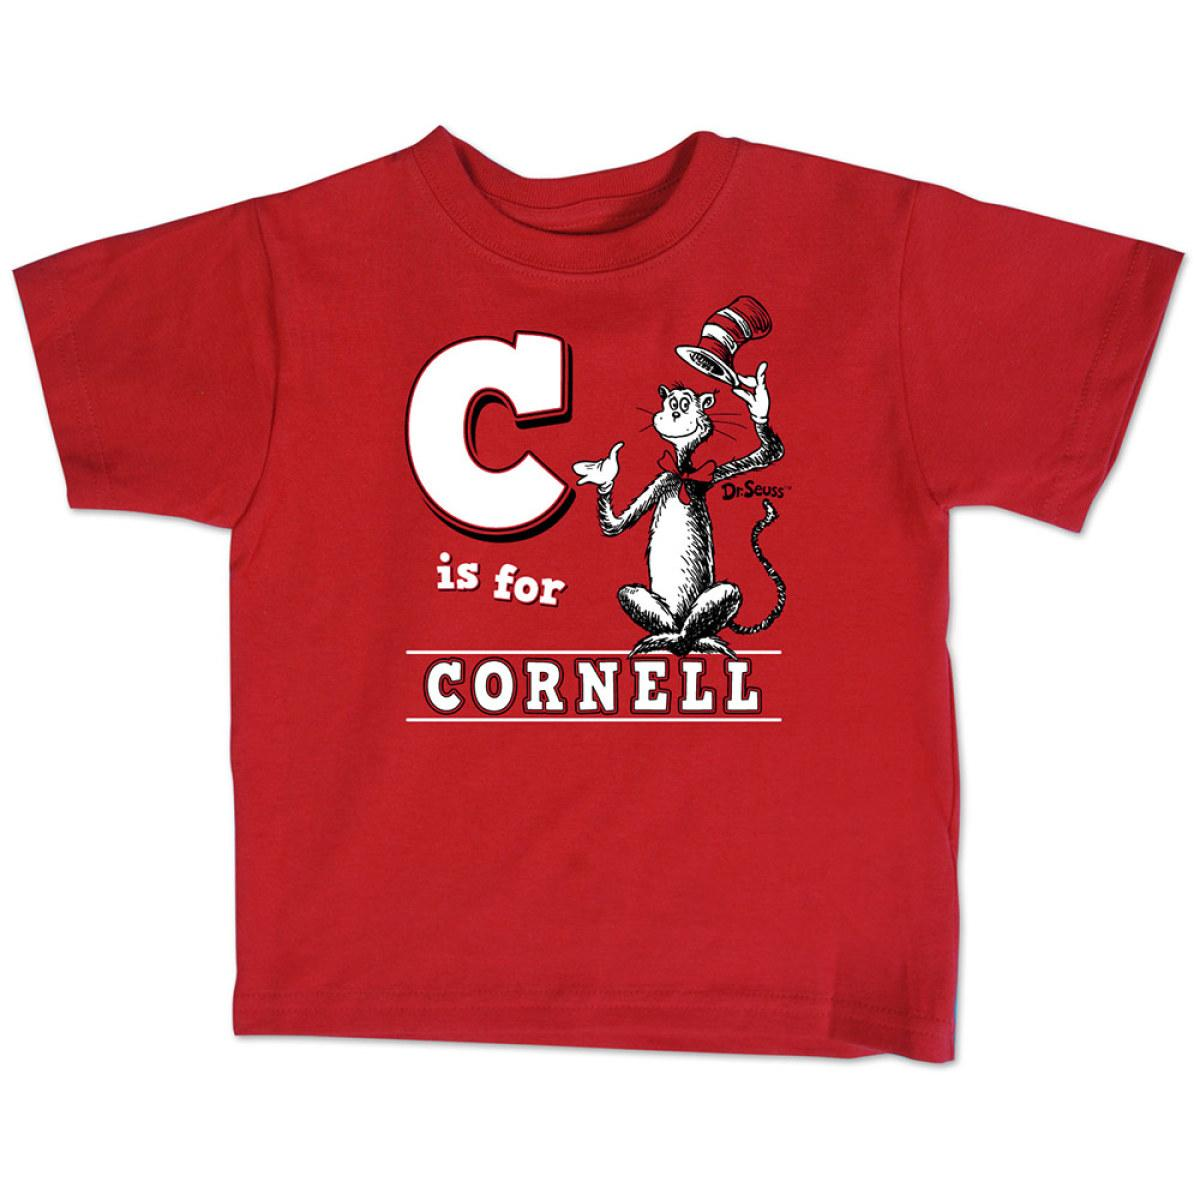 Infant And Toddler Tee Suess C Is For Cornell